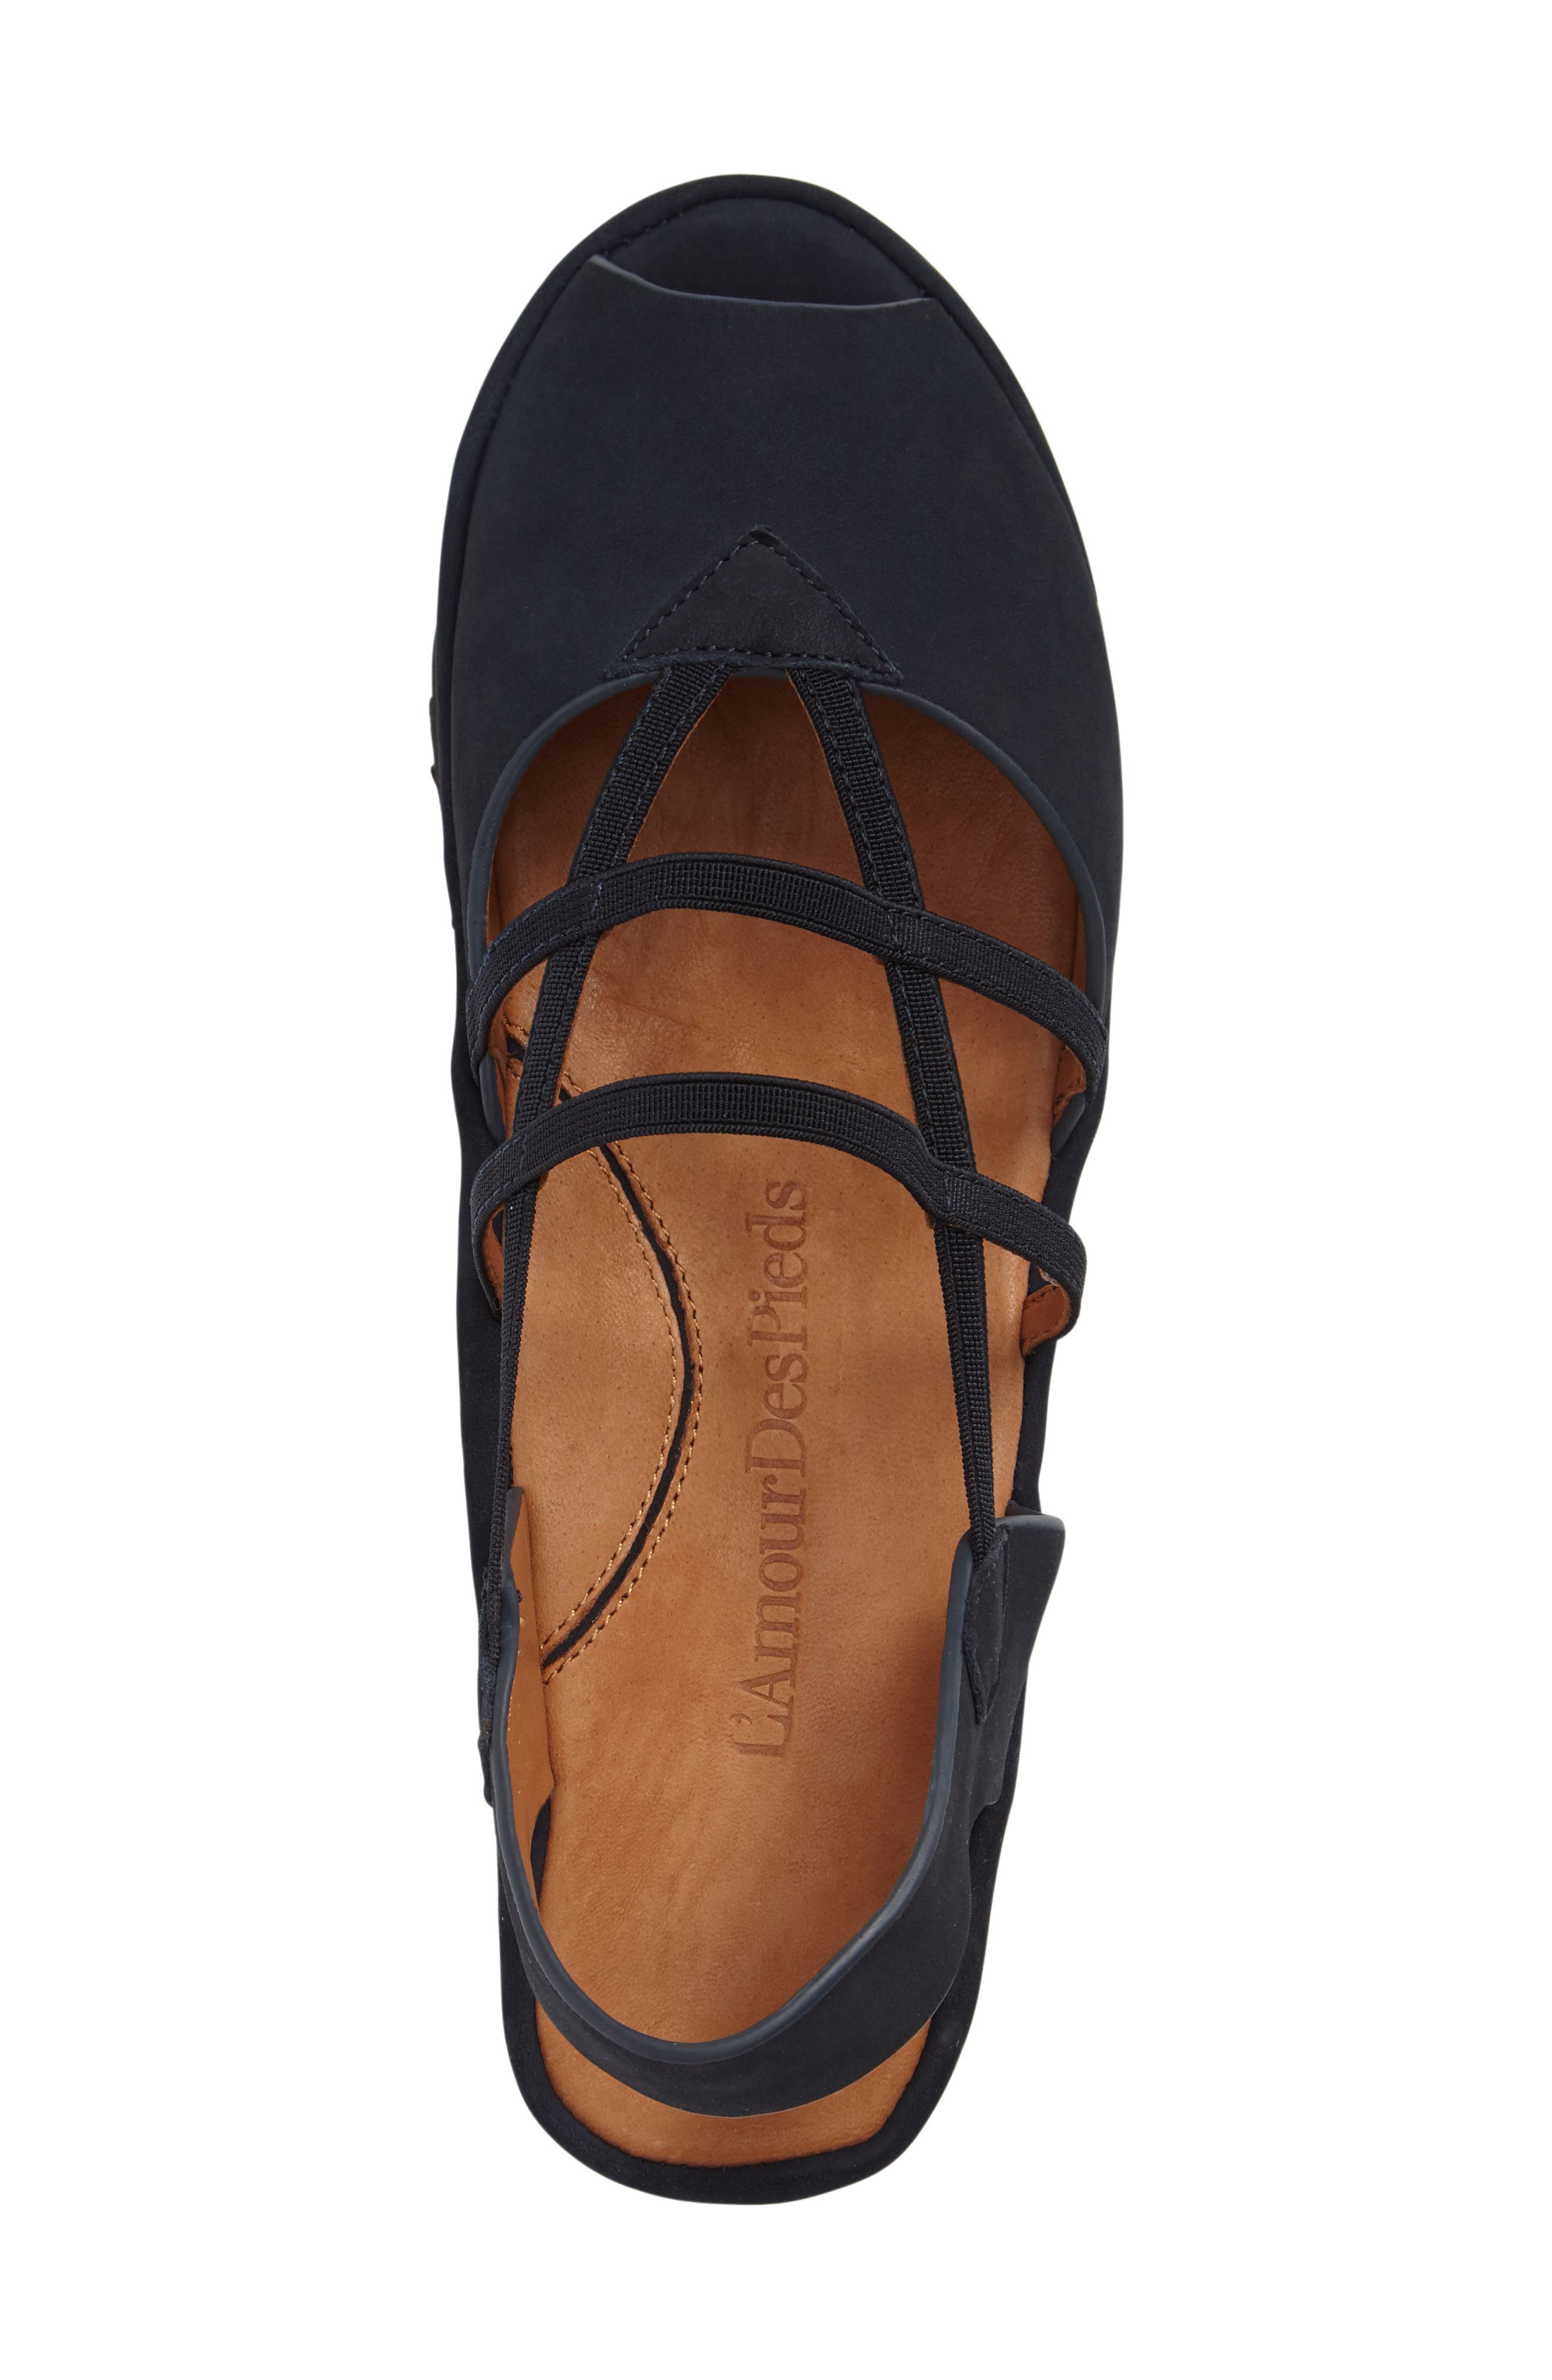 Adelais Platform Wedge Sandal,                             Alternate thumbnail 3, color,                             NAVY NUBUCK